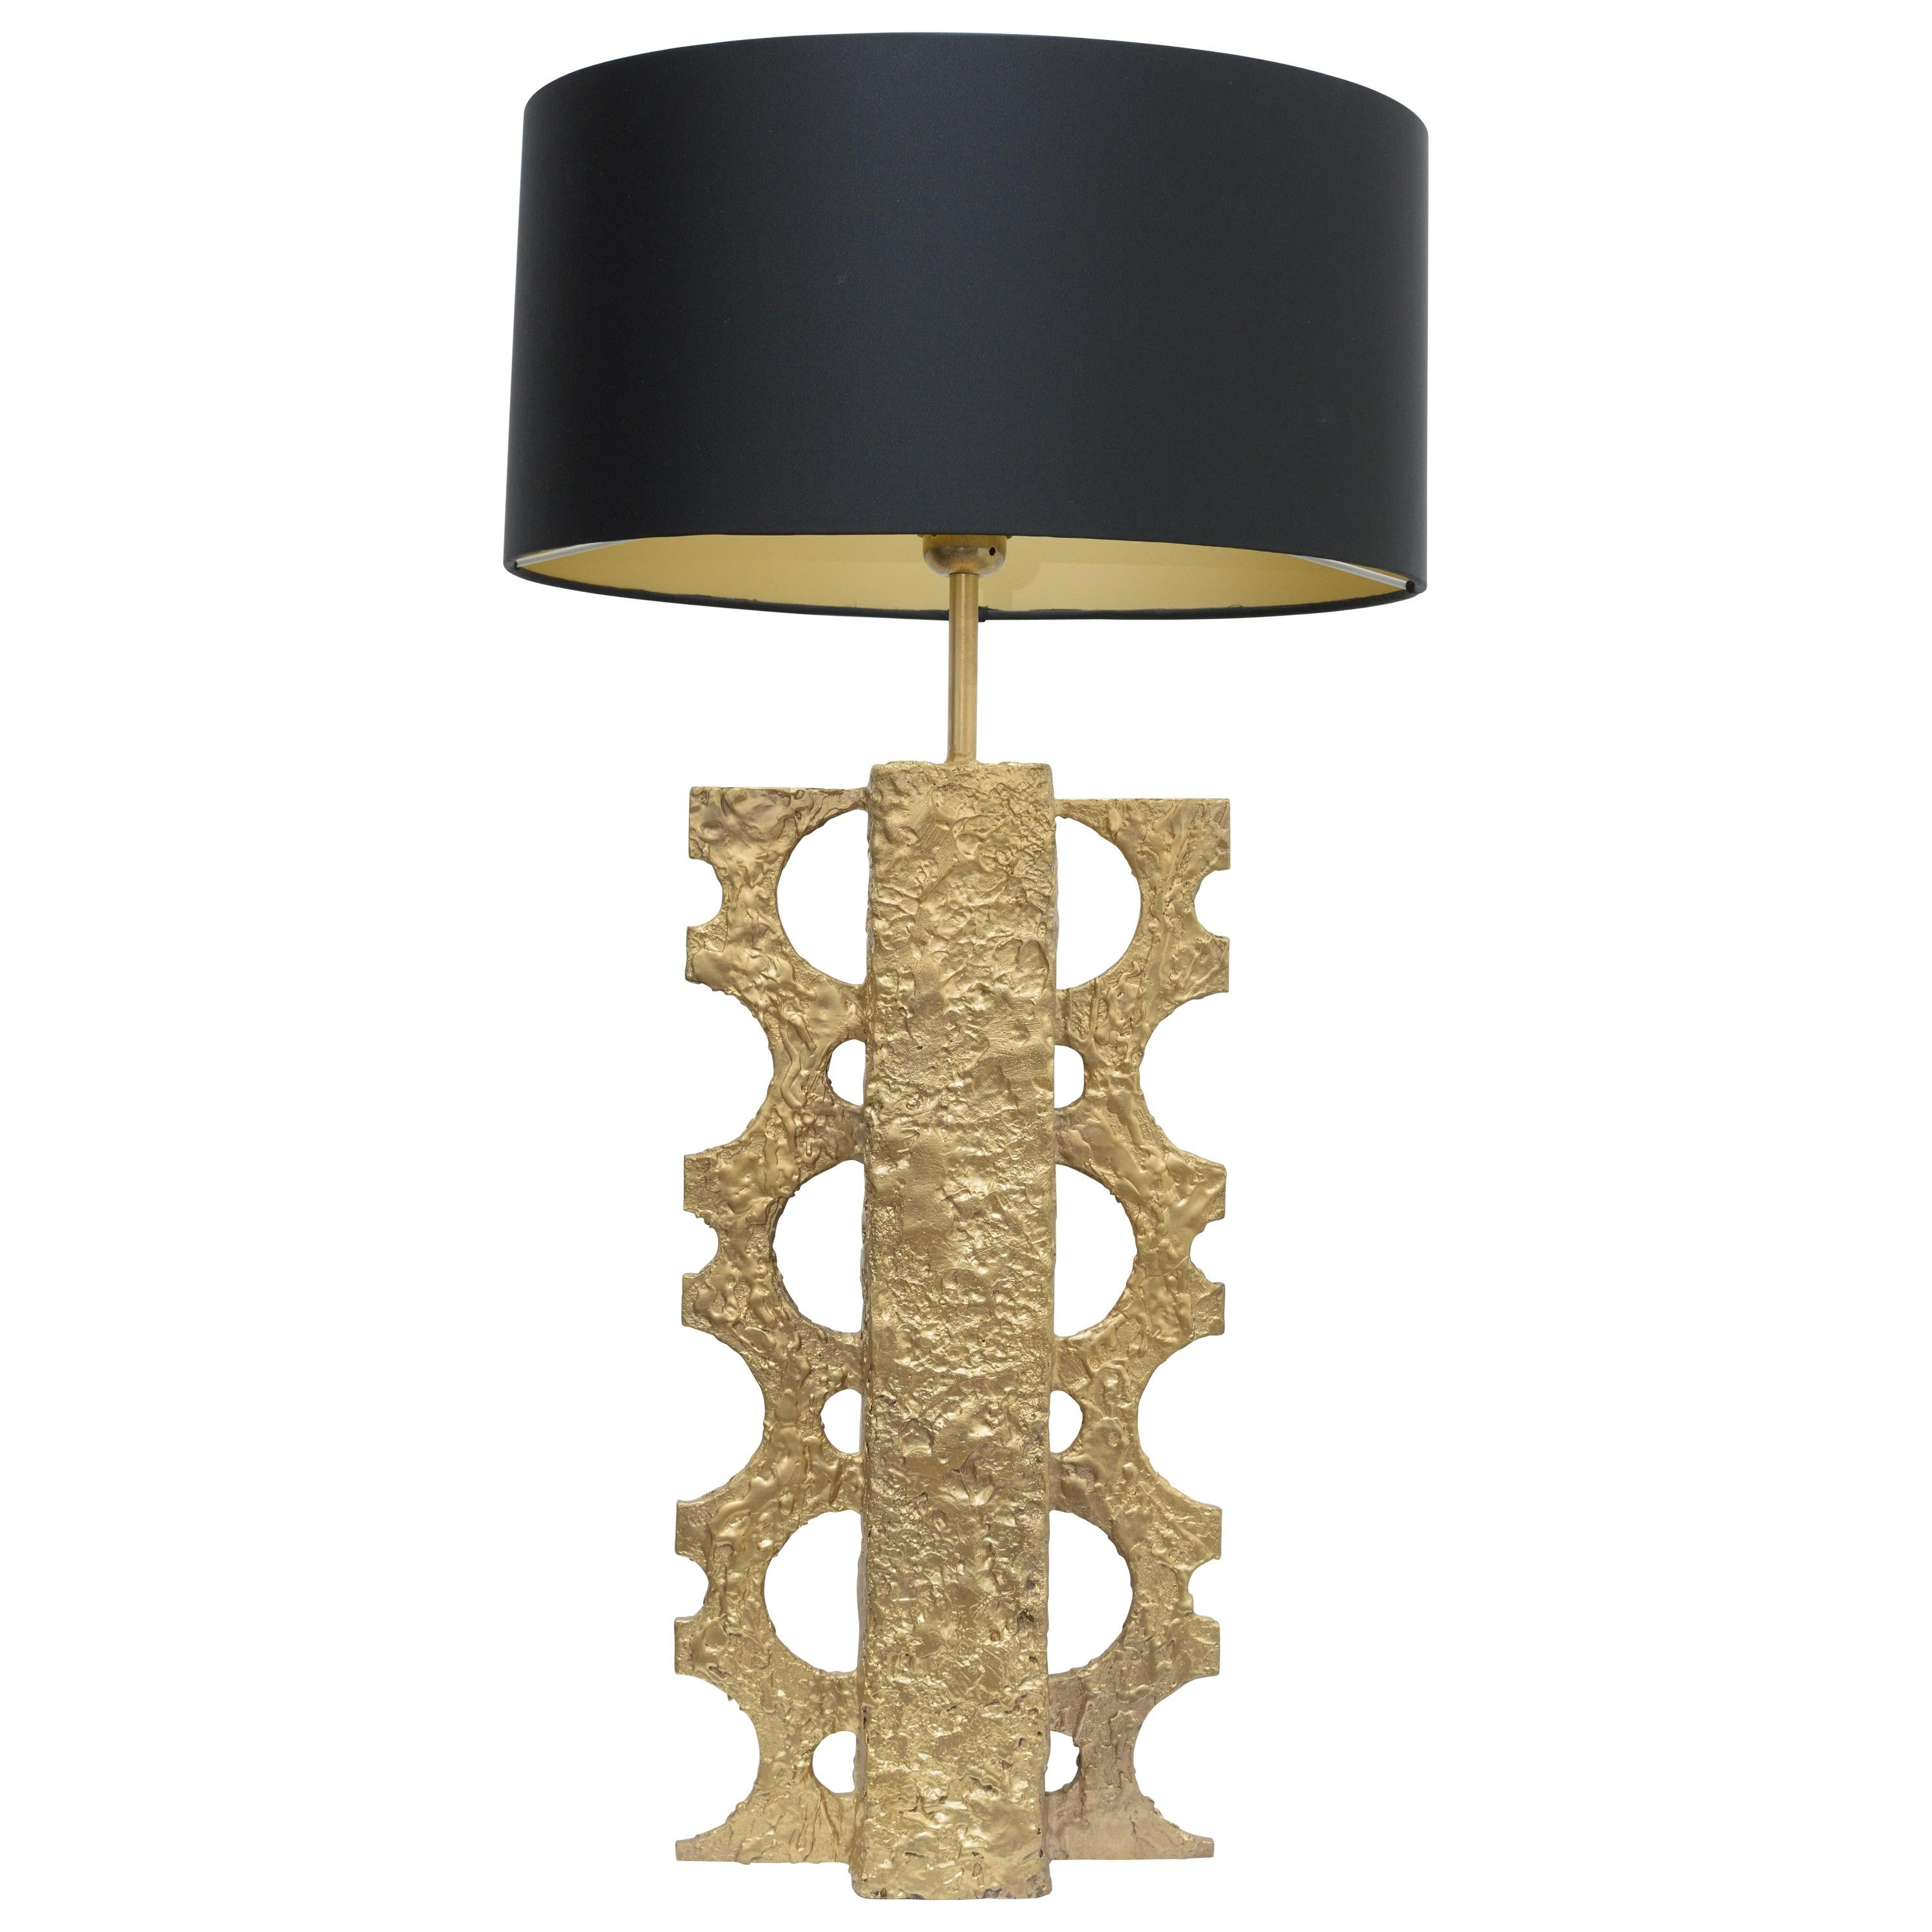 'Majestic'- One of a kind  Bronze Table Lamp